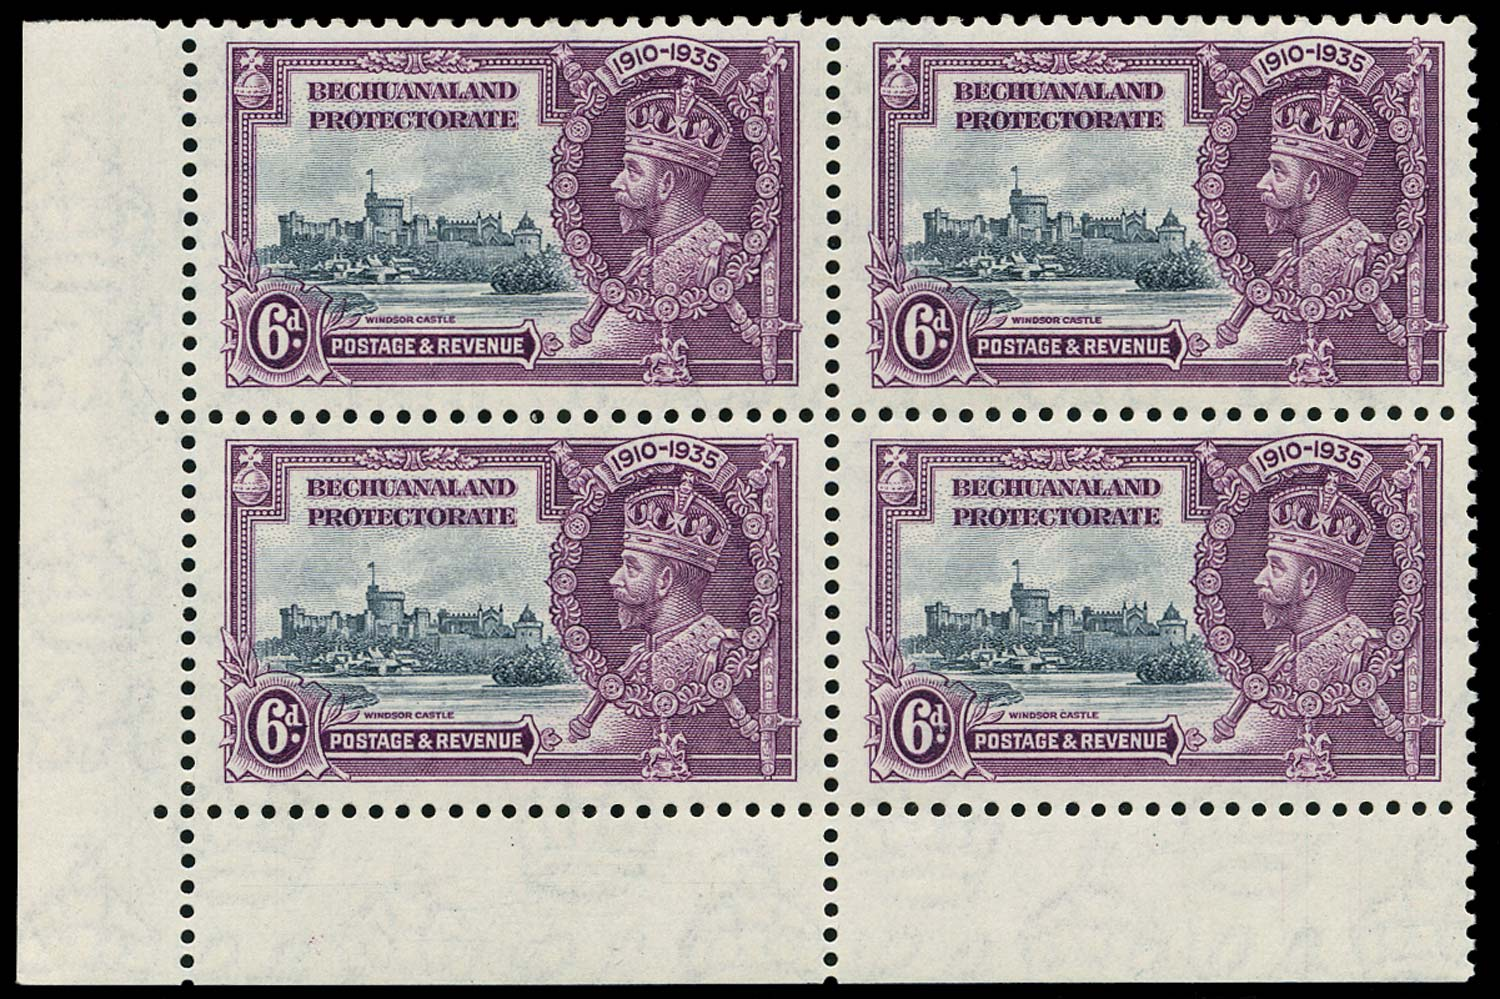 BECHUANALAND 1935  SG114/a Mint Silver Jubilee 6d with Extra Flagstaff